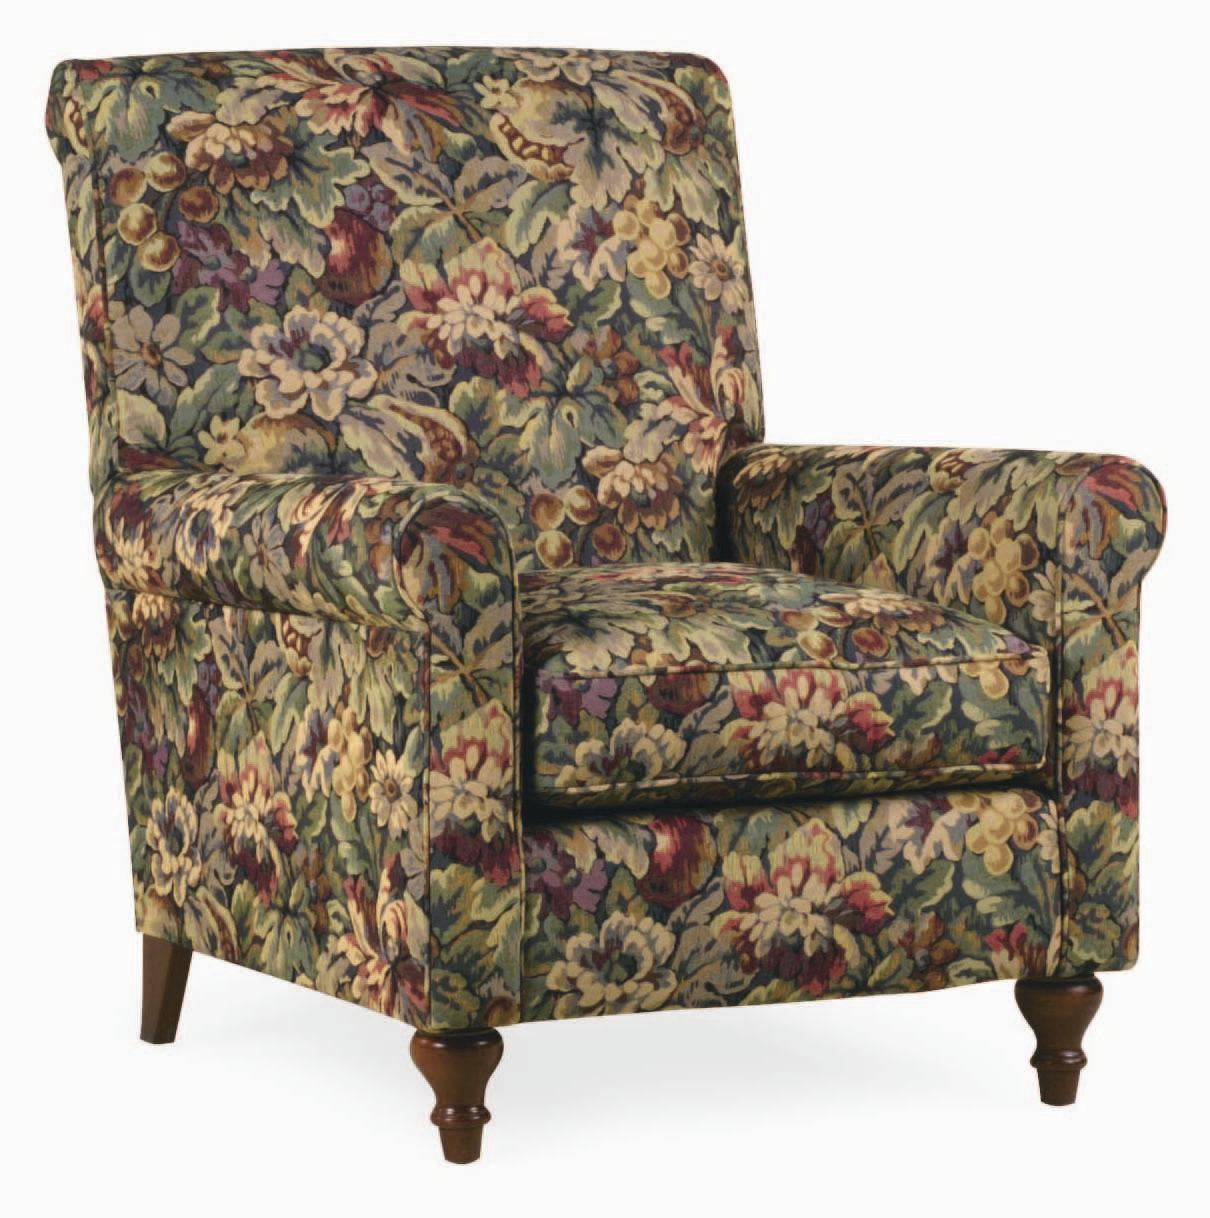 Gentil Thomasville® Upholstered Chairs And Ottomans Solitaire Upholstered Arm Chair